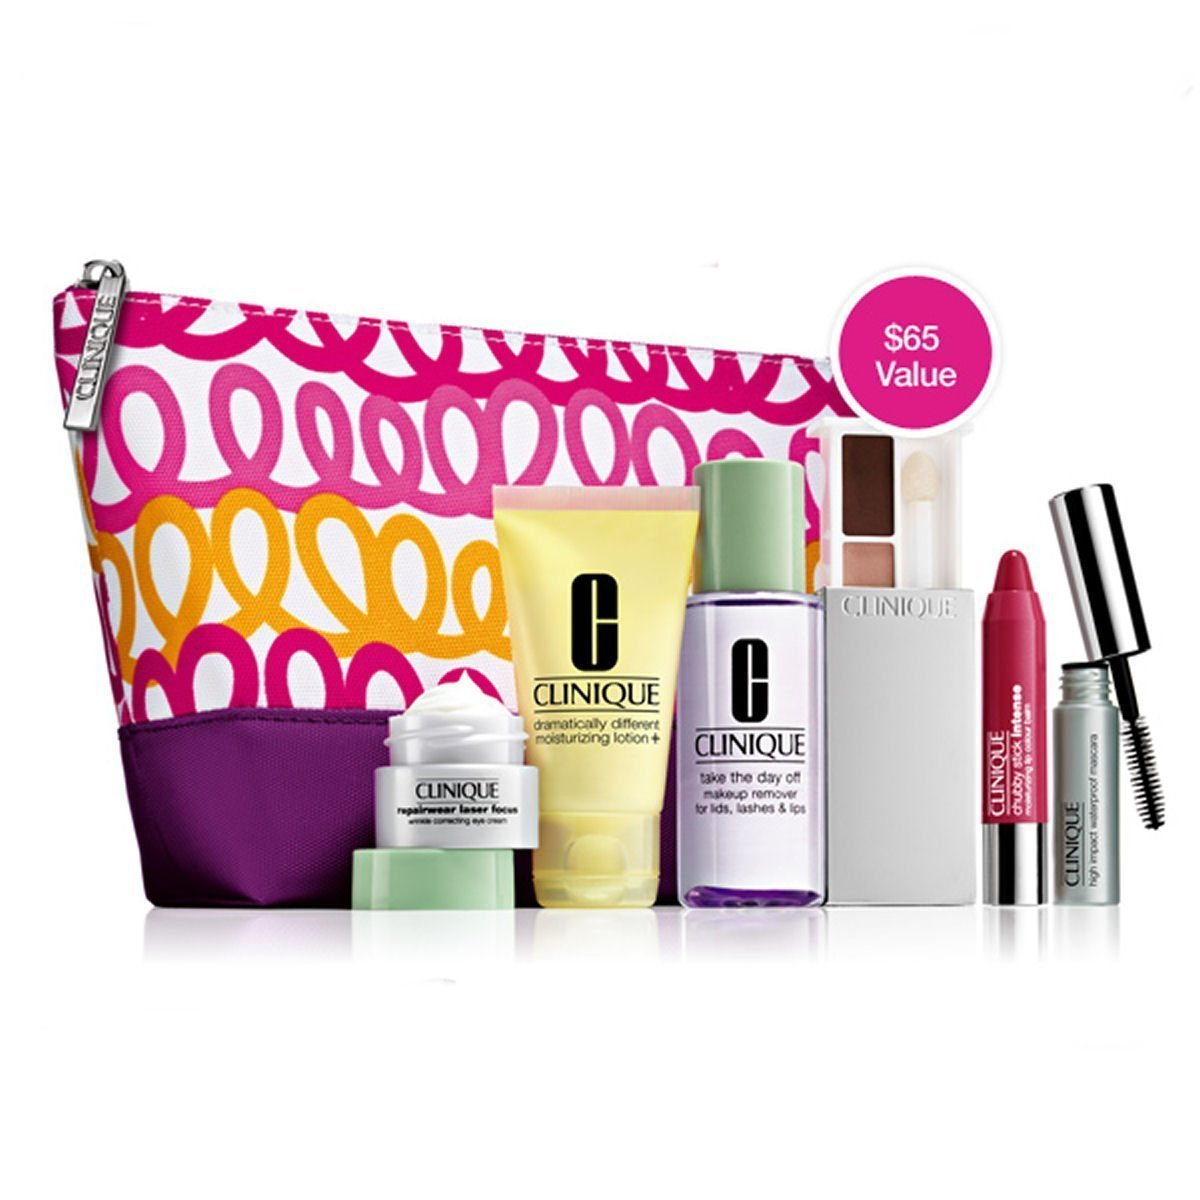 Clinique Official 2013 Winter Gift Set only $22.48 ($65 Value)